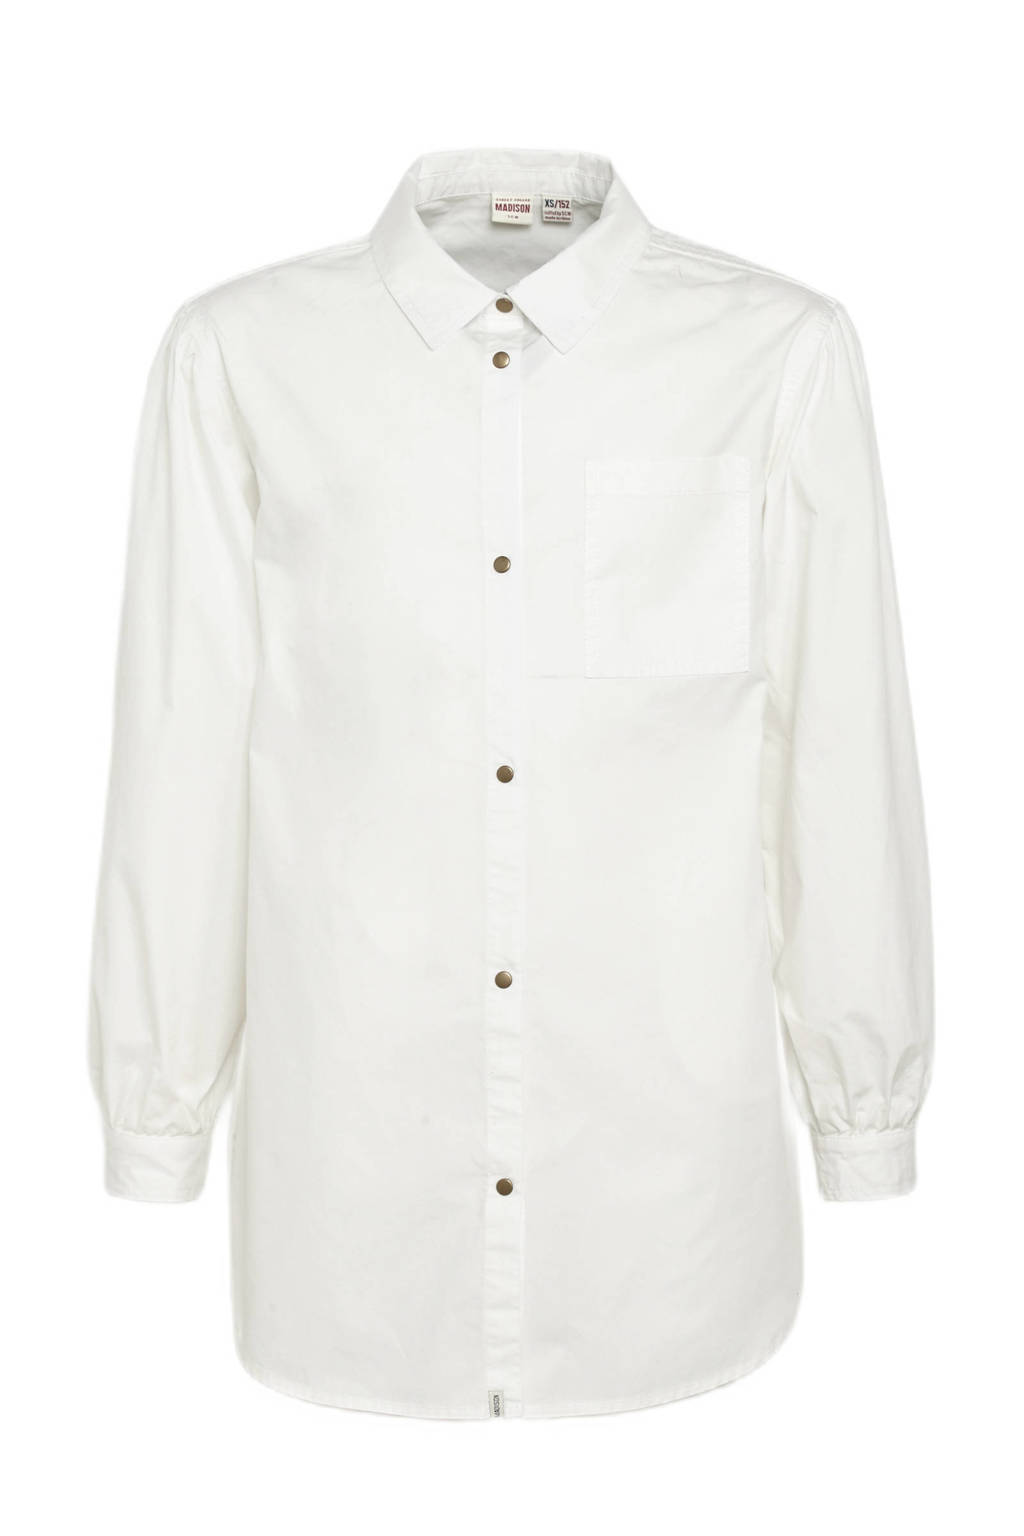 Street called Madison blouse offwhite, Offwhite